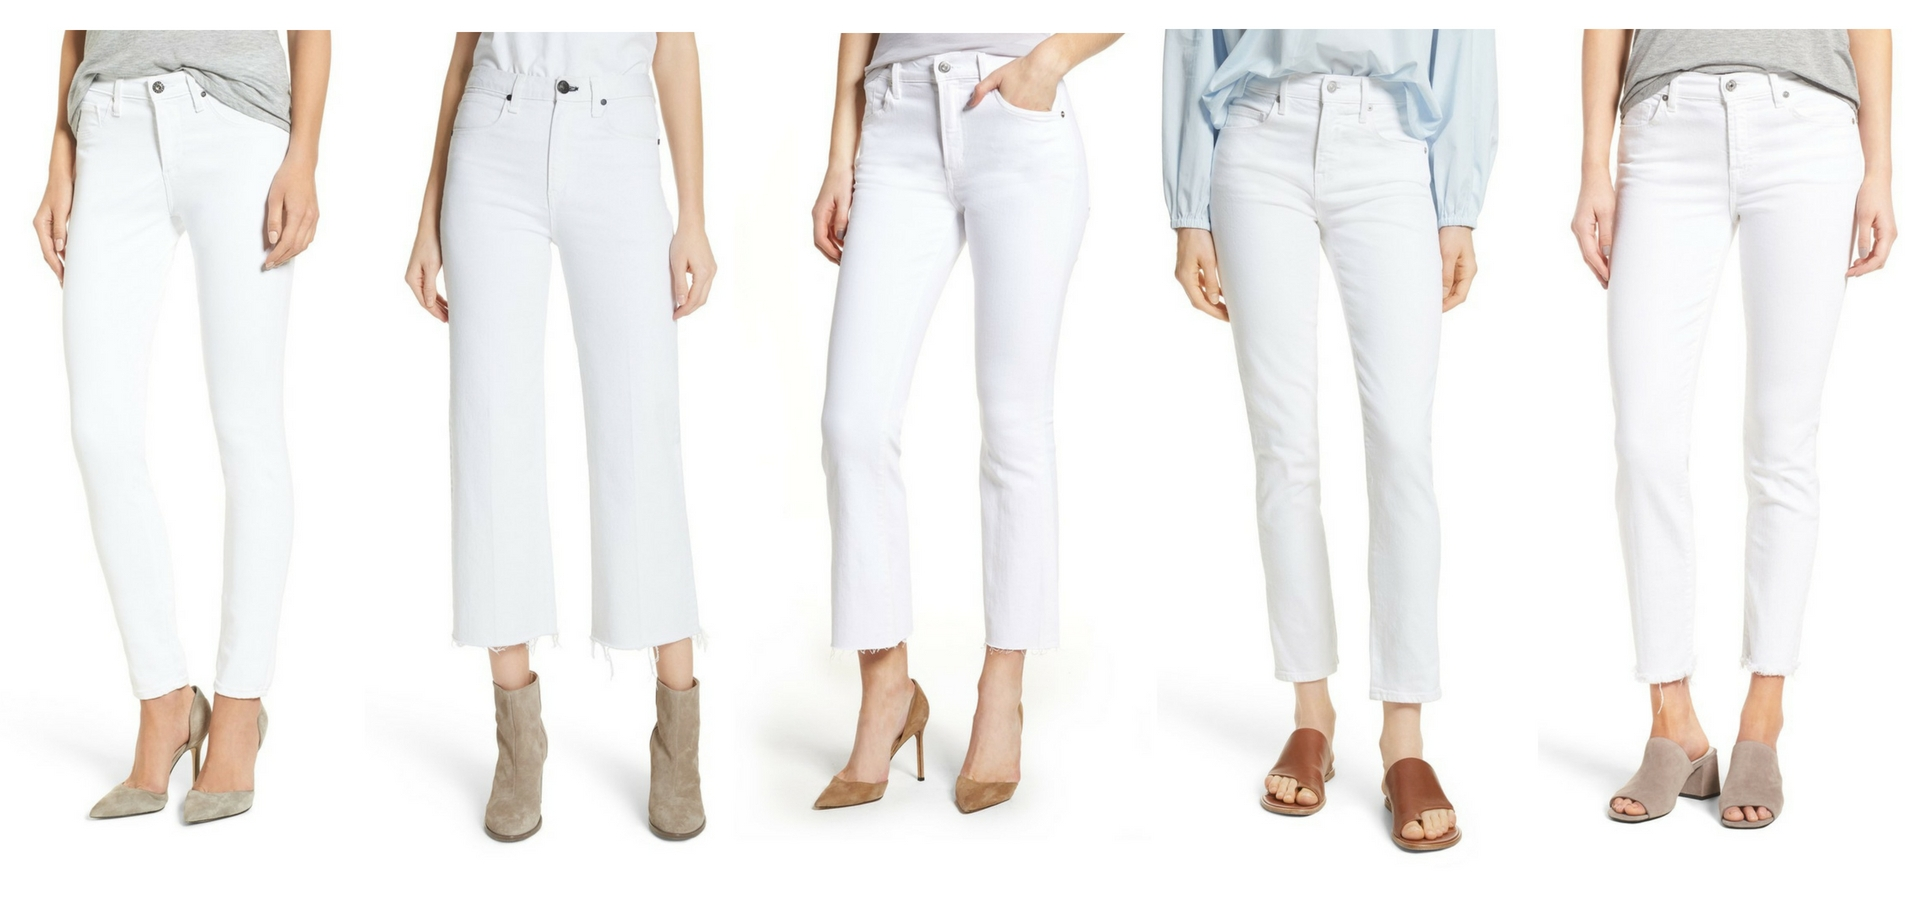 ALEXANDREA JARVIS | WORTH NOTING, PERFECT SUMMER WHITE JEANS